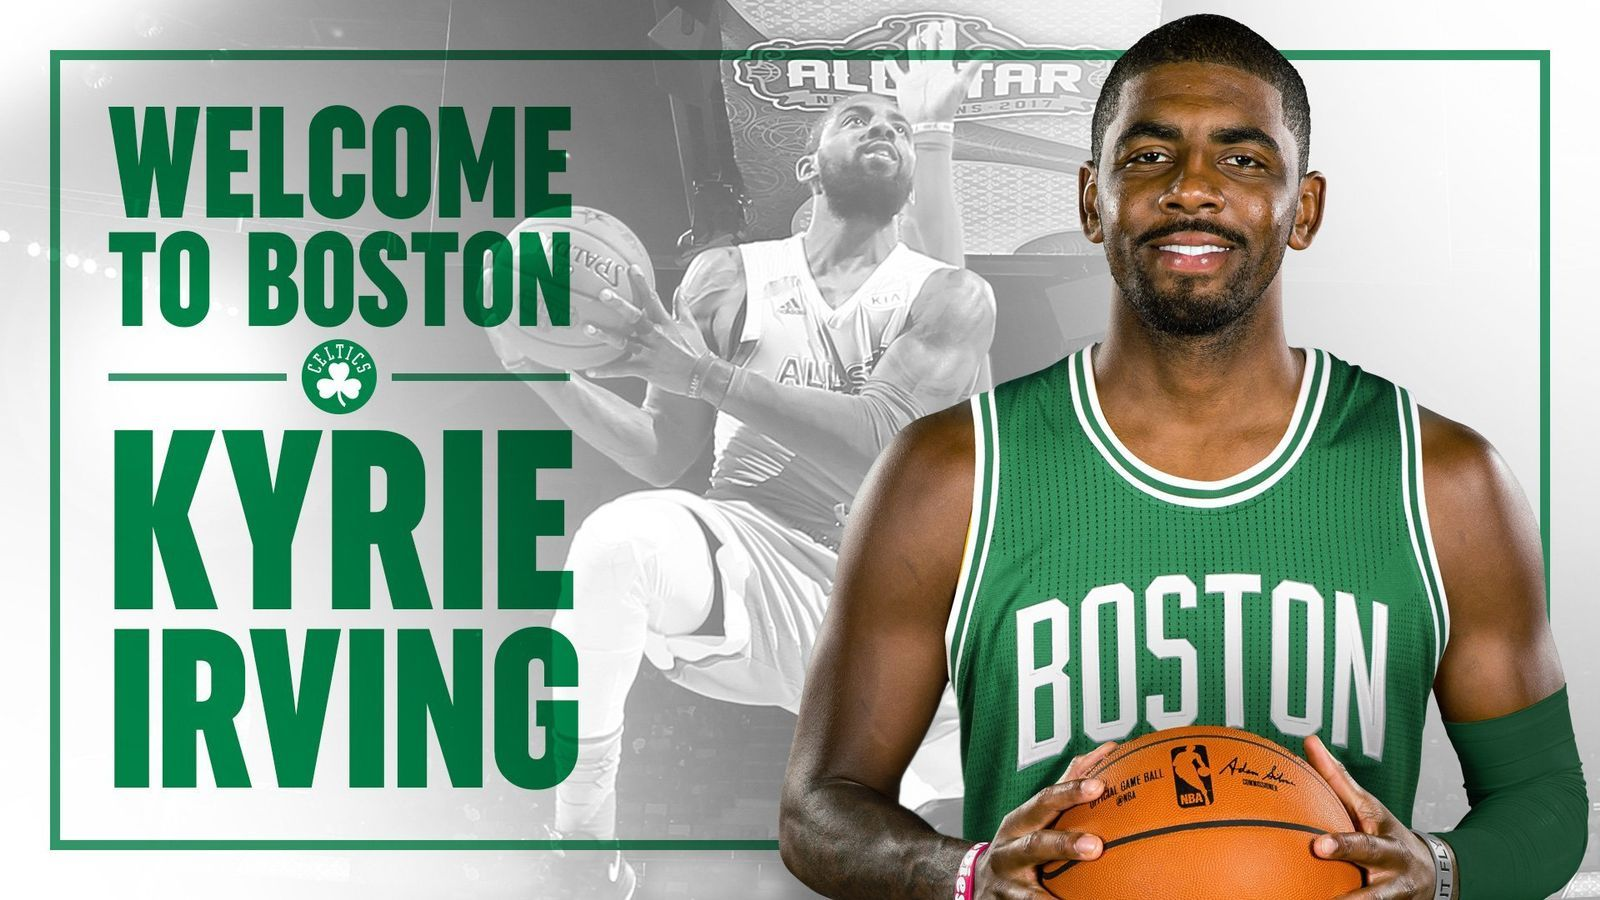 Celtis i Cavaliers sacsegen la NBA: Irving a Boston; Thomas a Cleveland